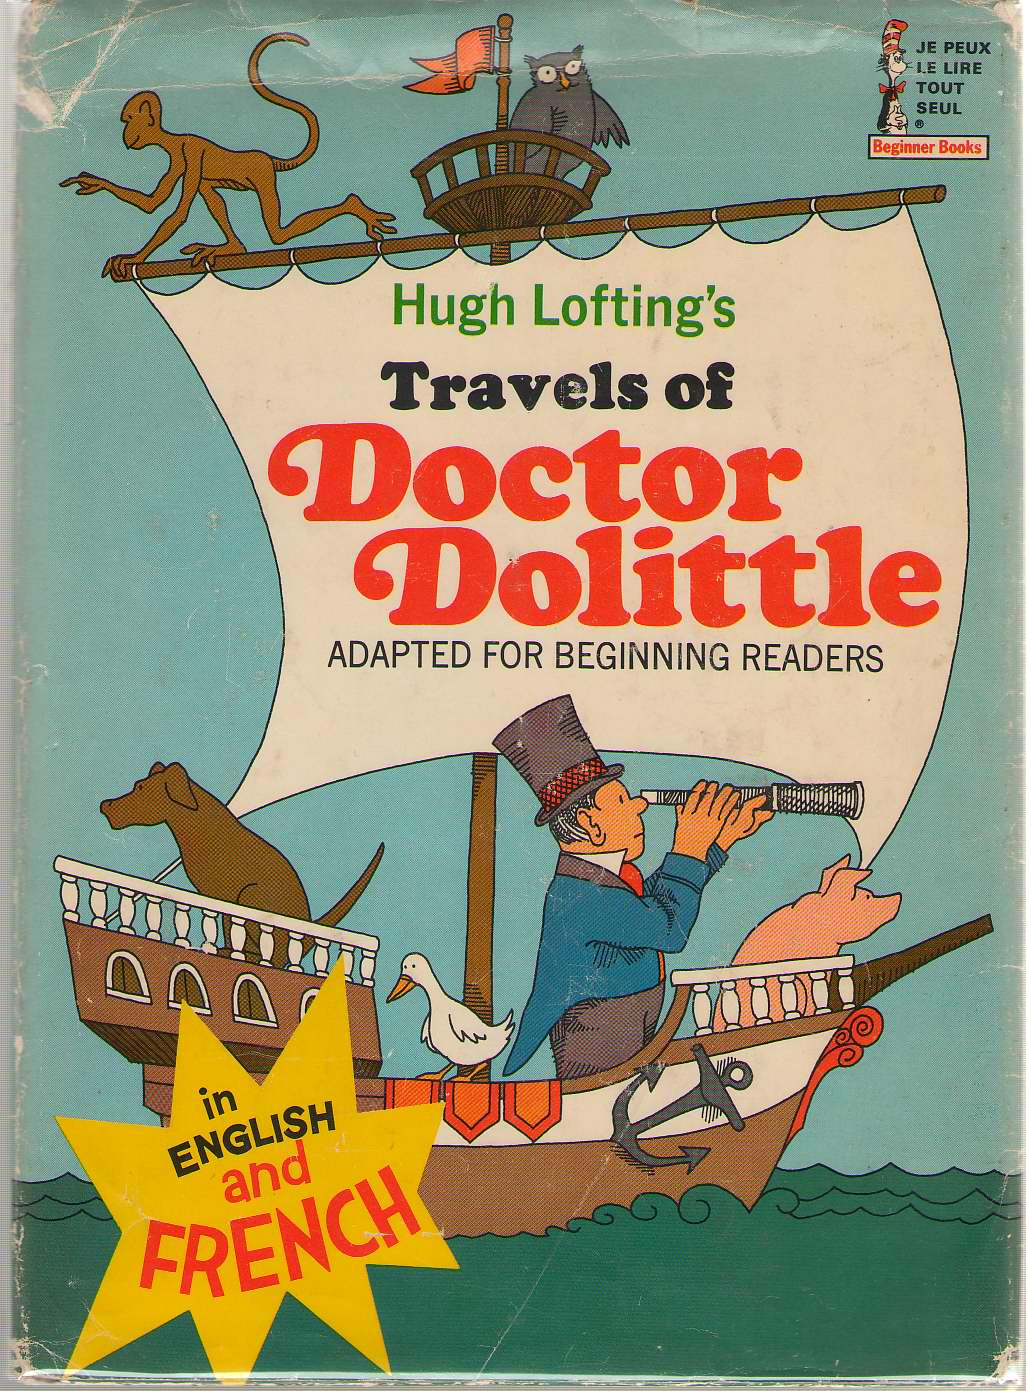 Travels of Doctor Dolittle In English and French, Perkins, Al & Hugh Lofting & Philip Wende